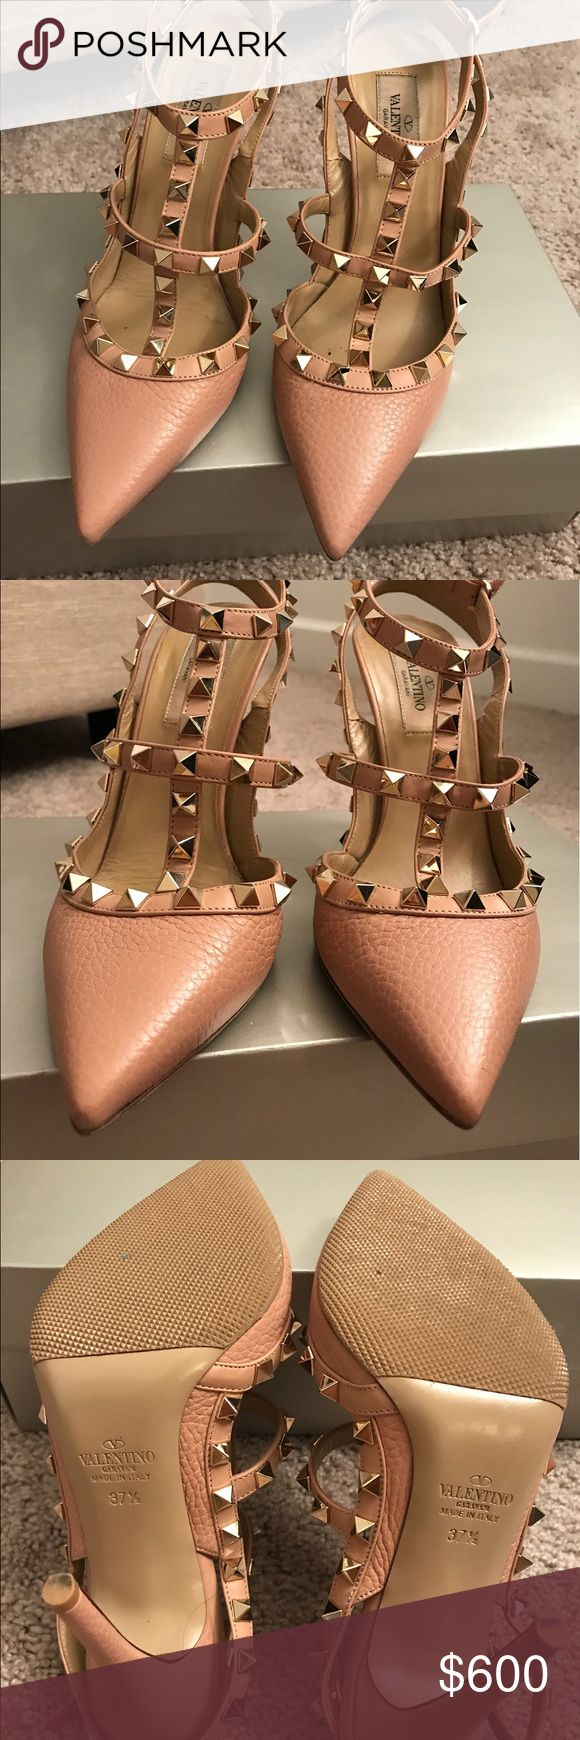 Valentino rock studded heels in blush Beautiful Valentino rock stud heels in a creamy blush. Only worn once for my wedding! No damage anywhere leather in pristine condition and I added the rubber to the sole for protection and extra comfort. 37.5 but fits a size 7 US Valentino Shoes Heels